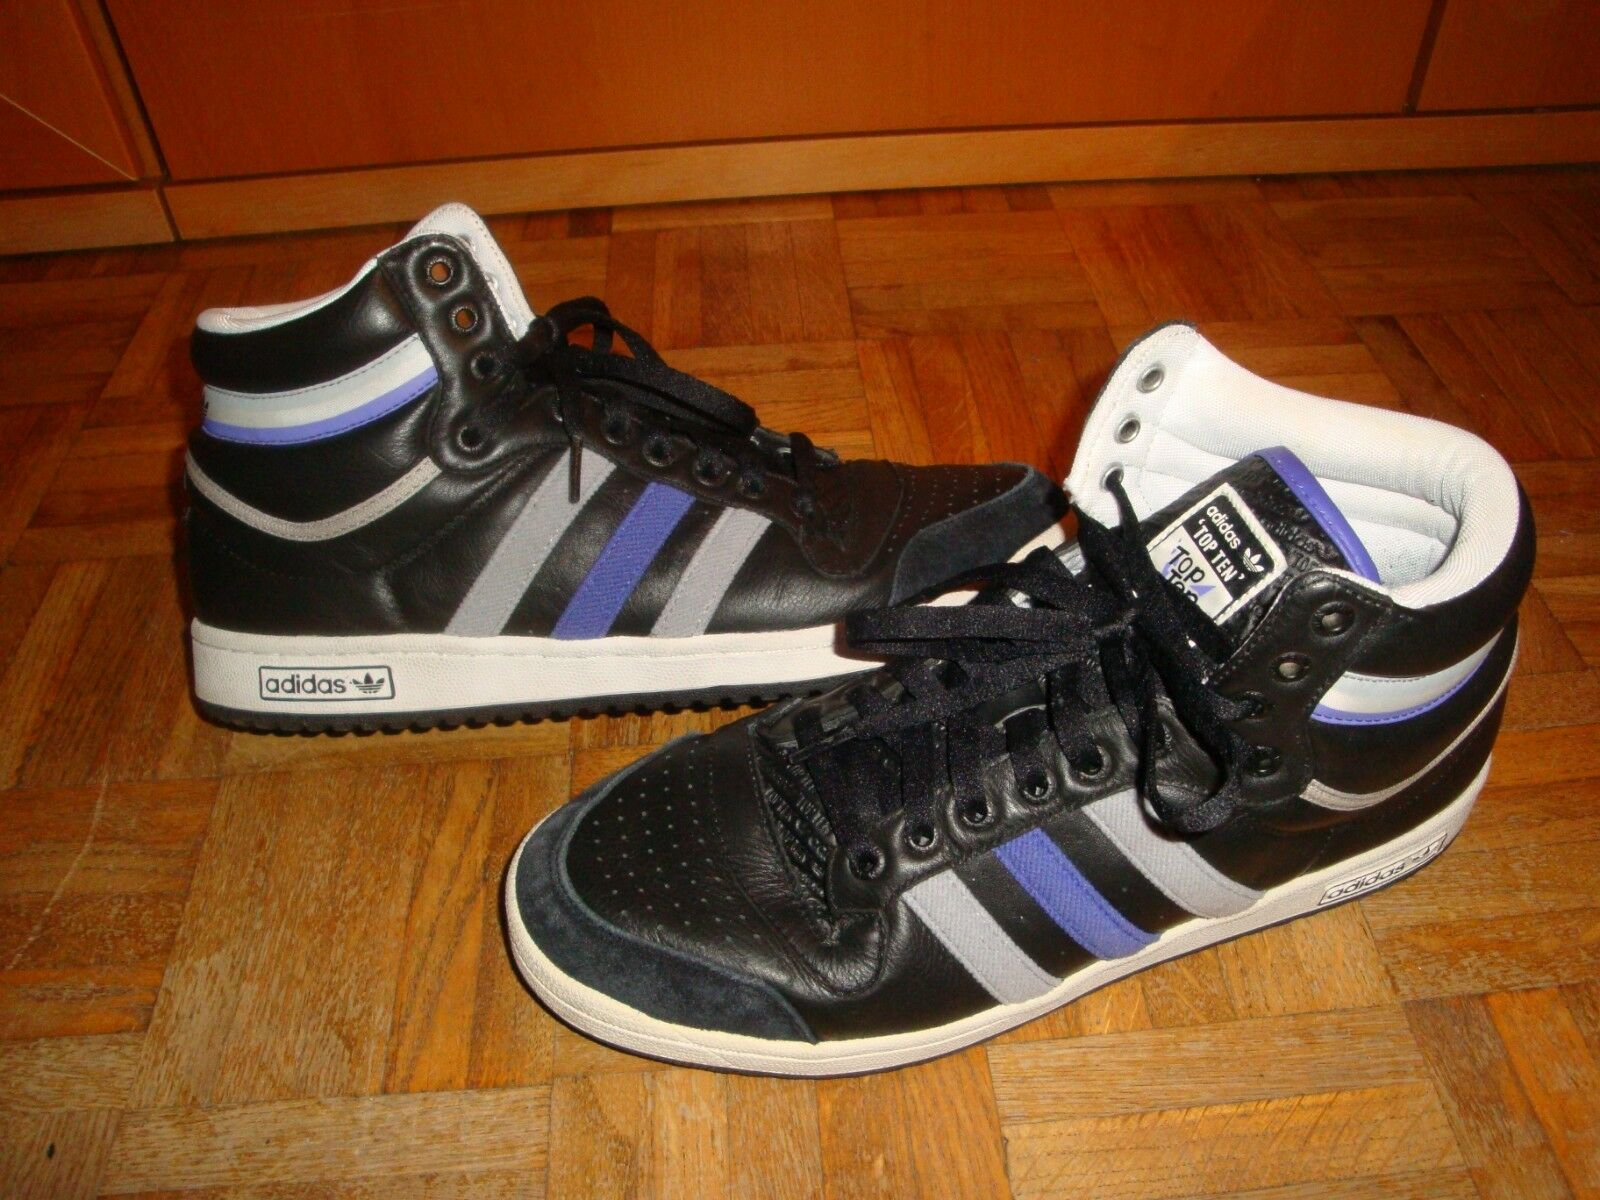 Adidas Top Ten High Used - zapatillas Talla 46 2 3 Occasion - US 12   UK 11,5